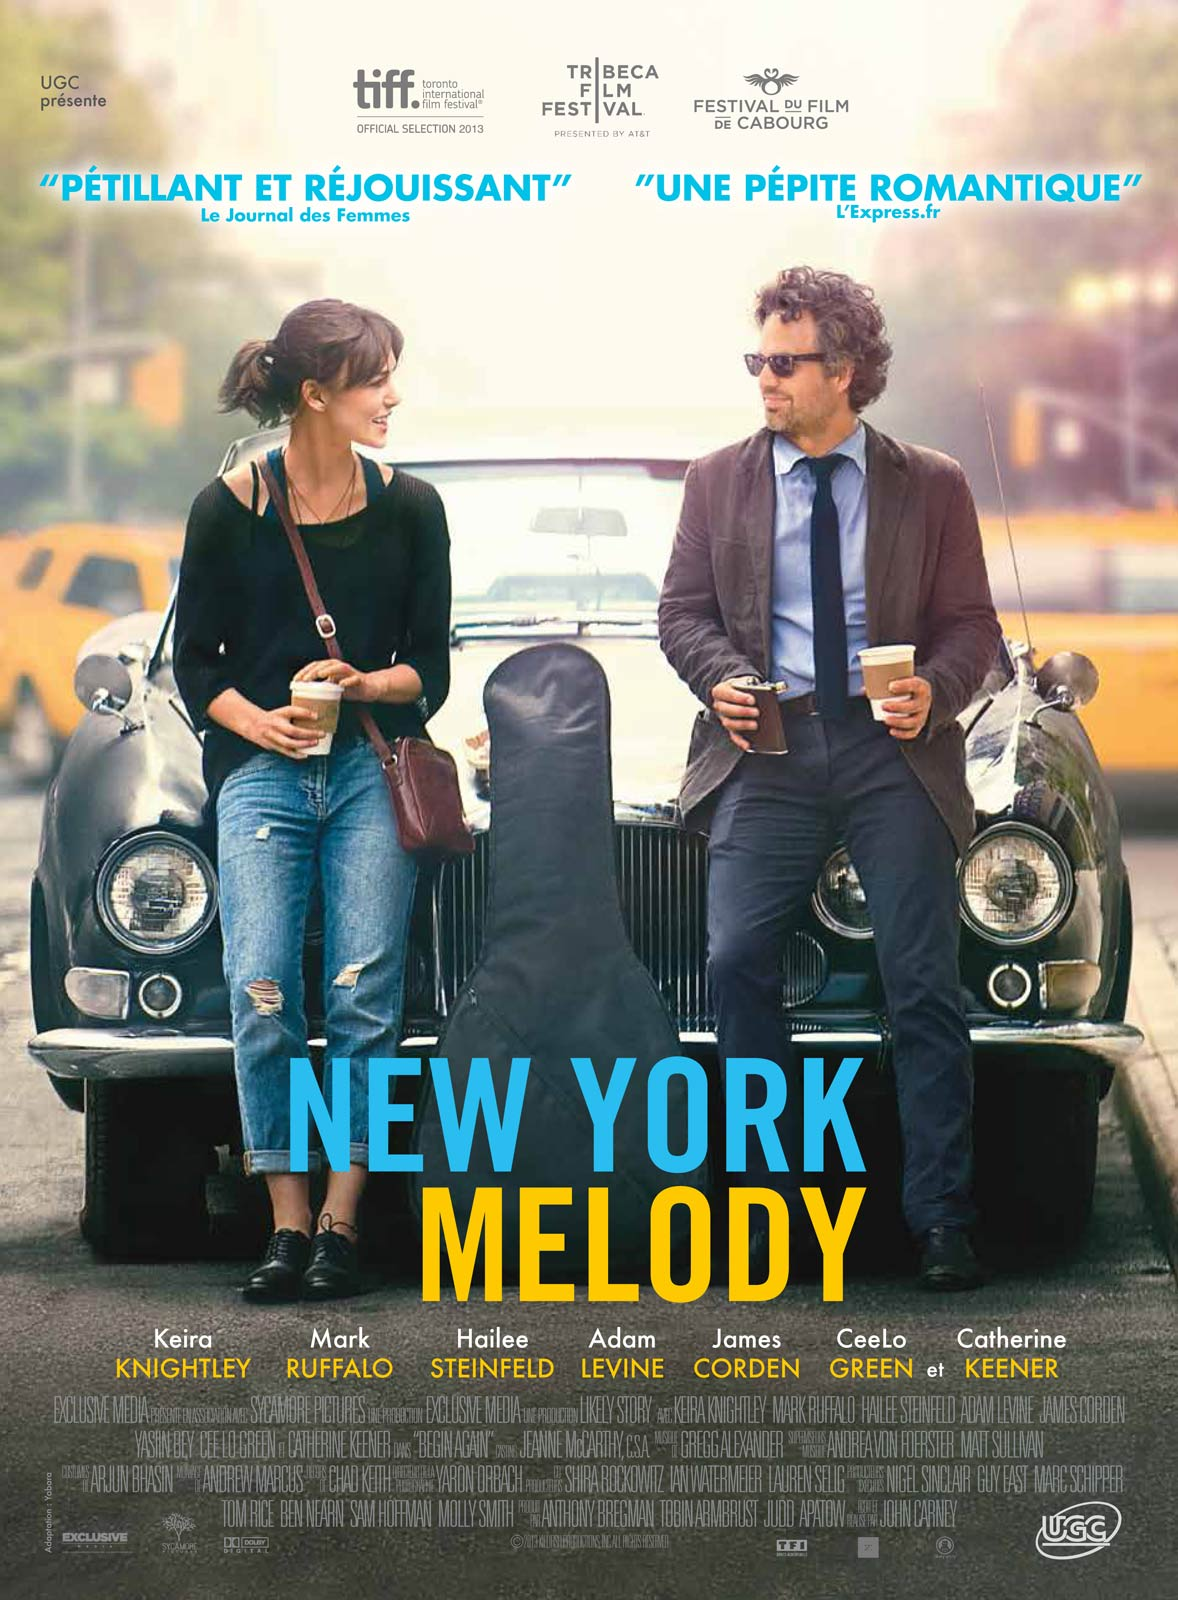 New York Melody (2014) en français